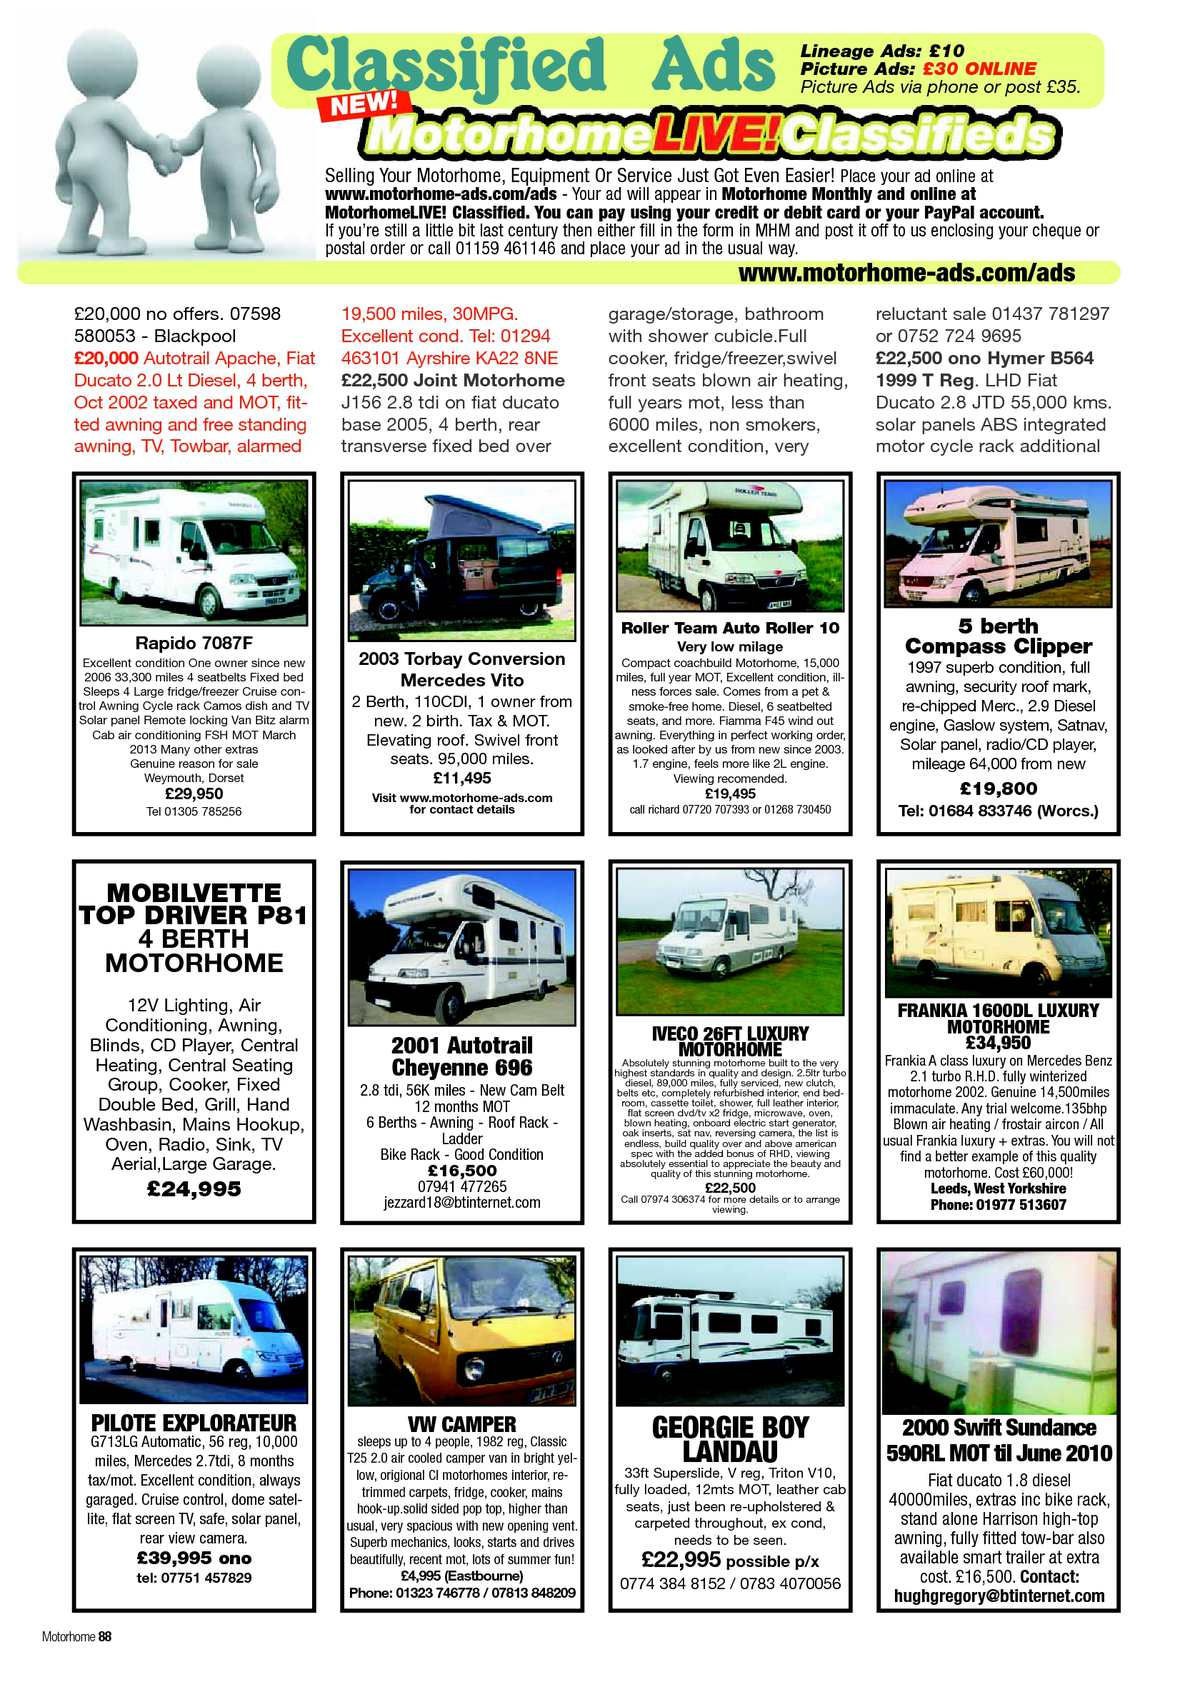 July 2012 motorhome monthly magazine calameo downloader page 90 fandeluxe Gallery